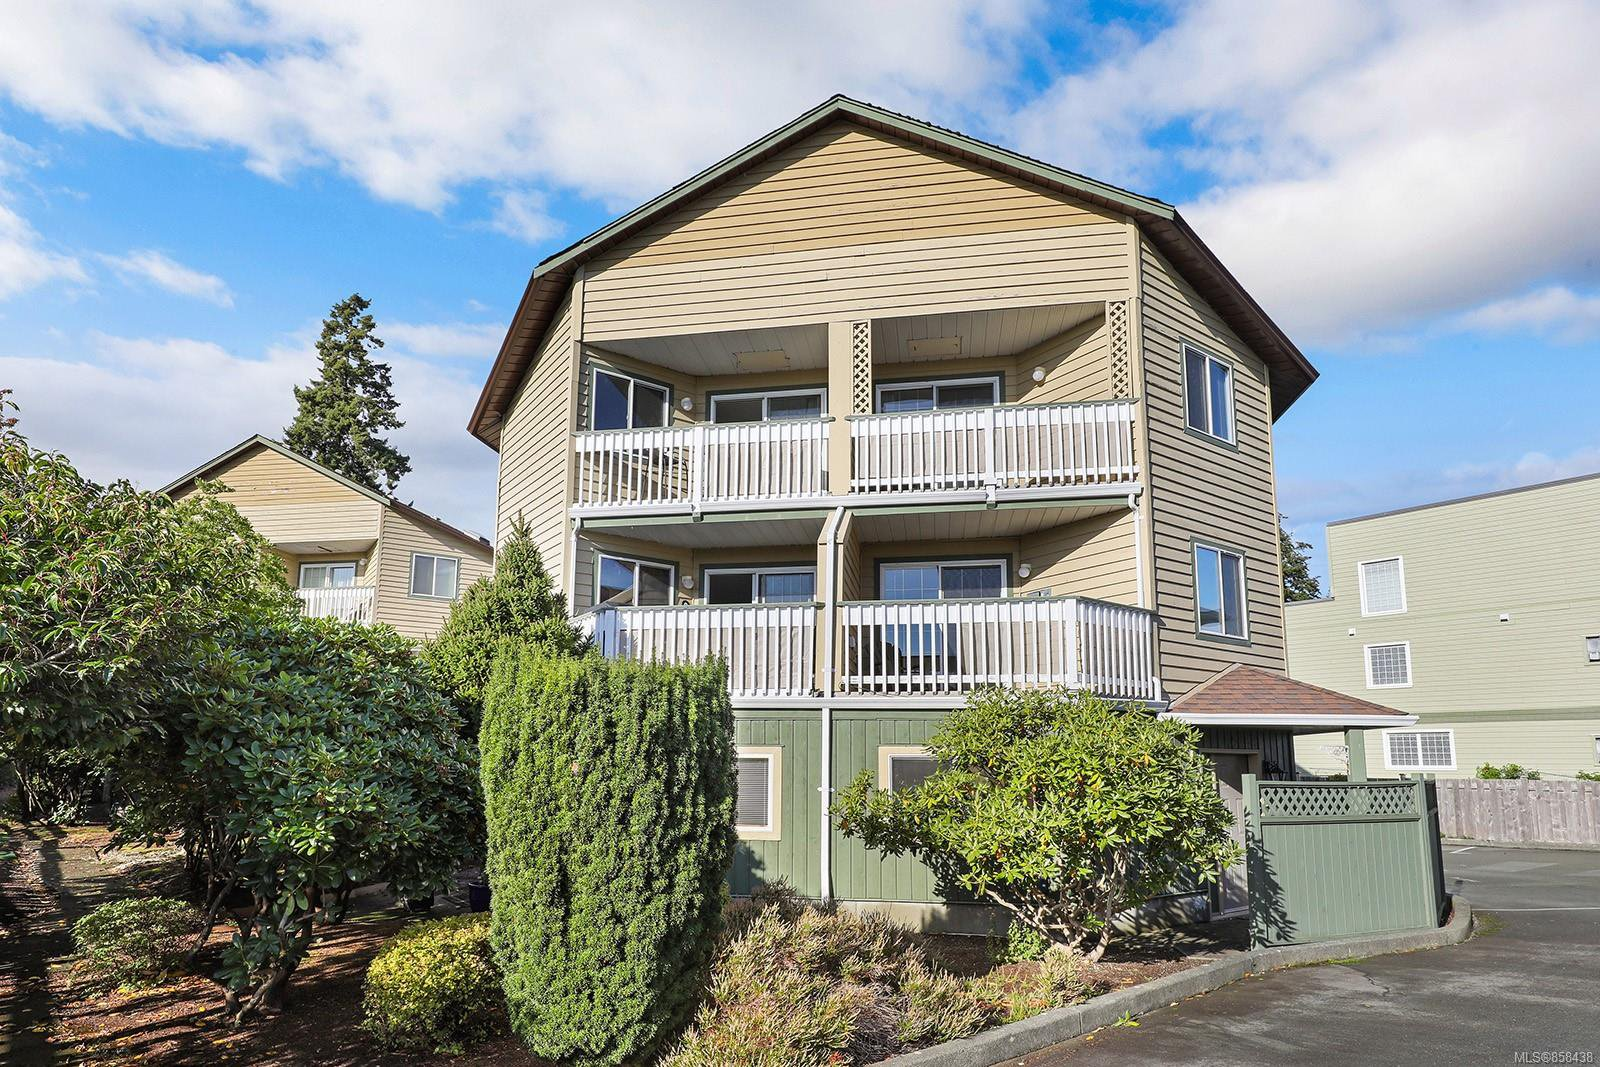 Main Photo: 6 3020 Cliffe Ave in : CV Courtenay City Row/Townhouse for sale (Comox Valley)  : MLS®# 858438